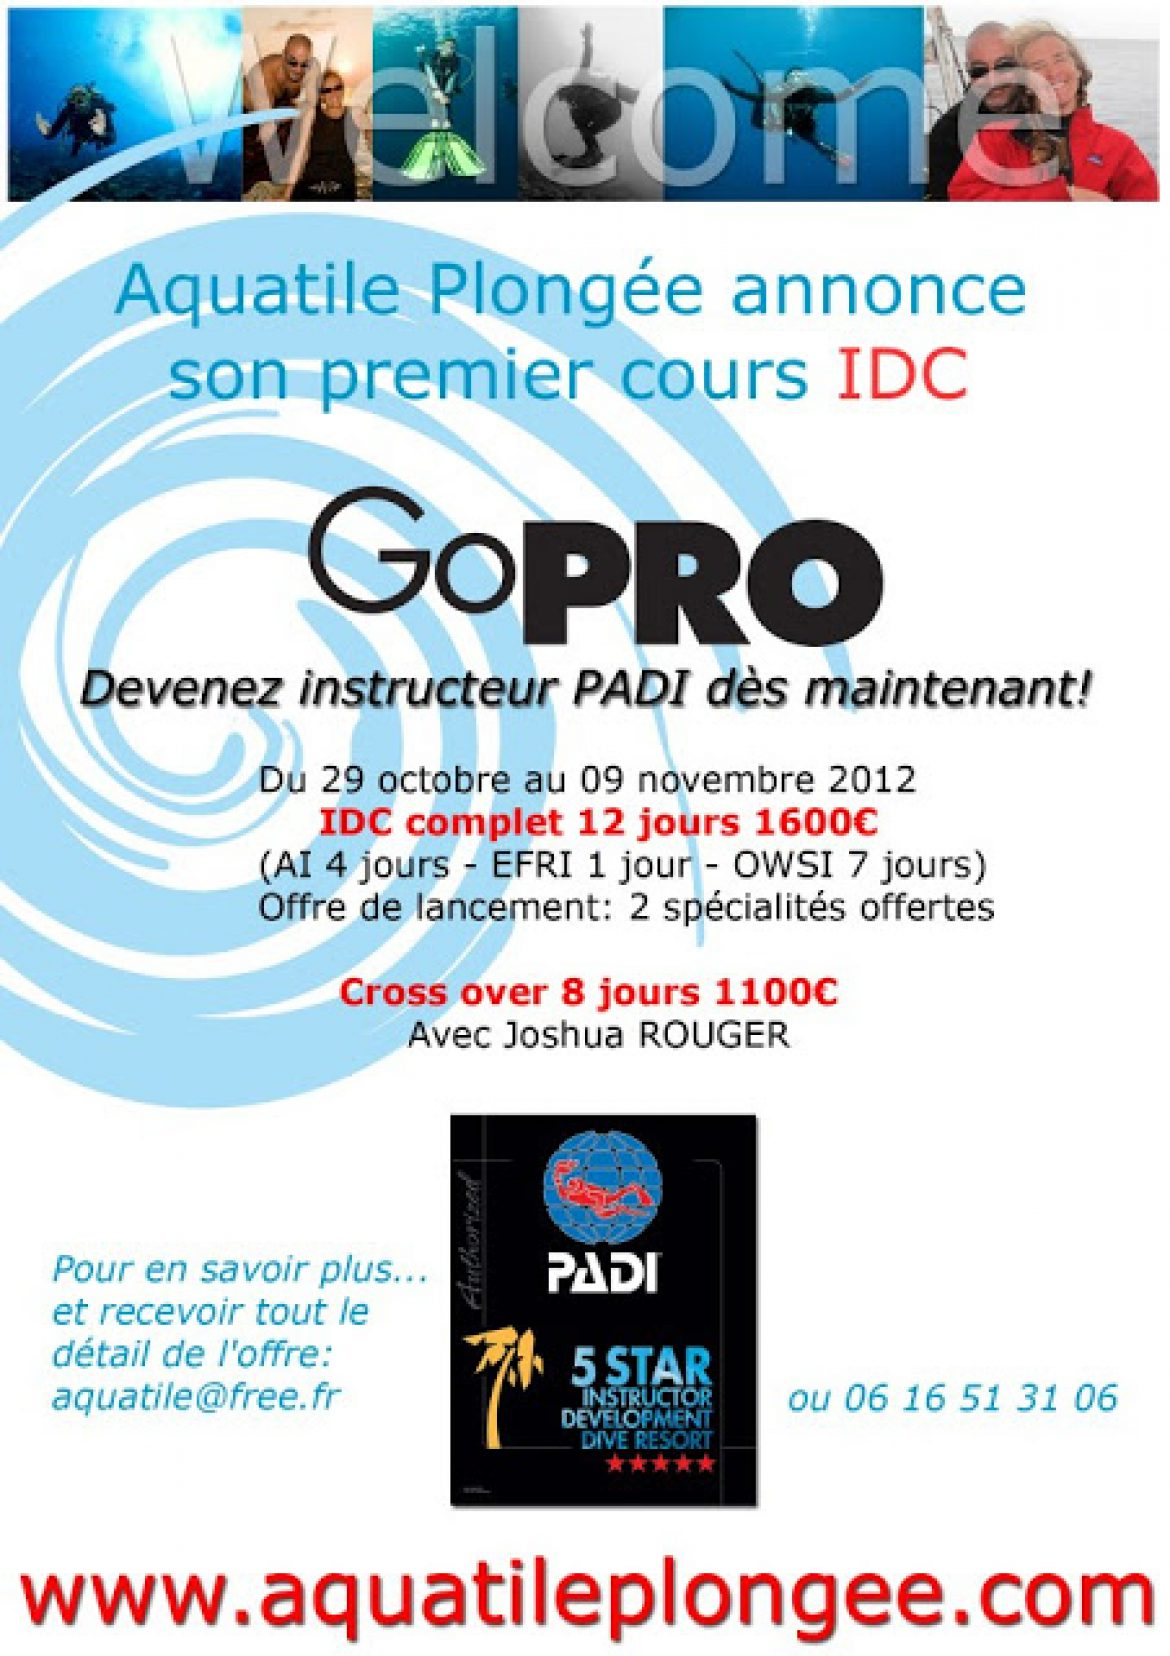 Devenir Instructeur PADI